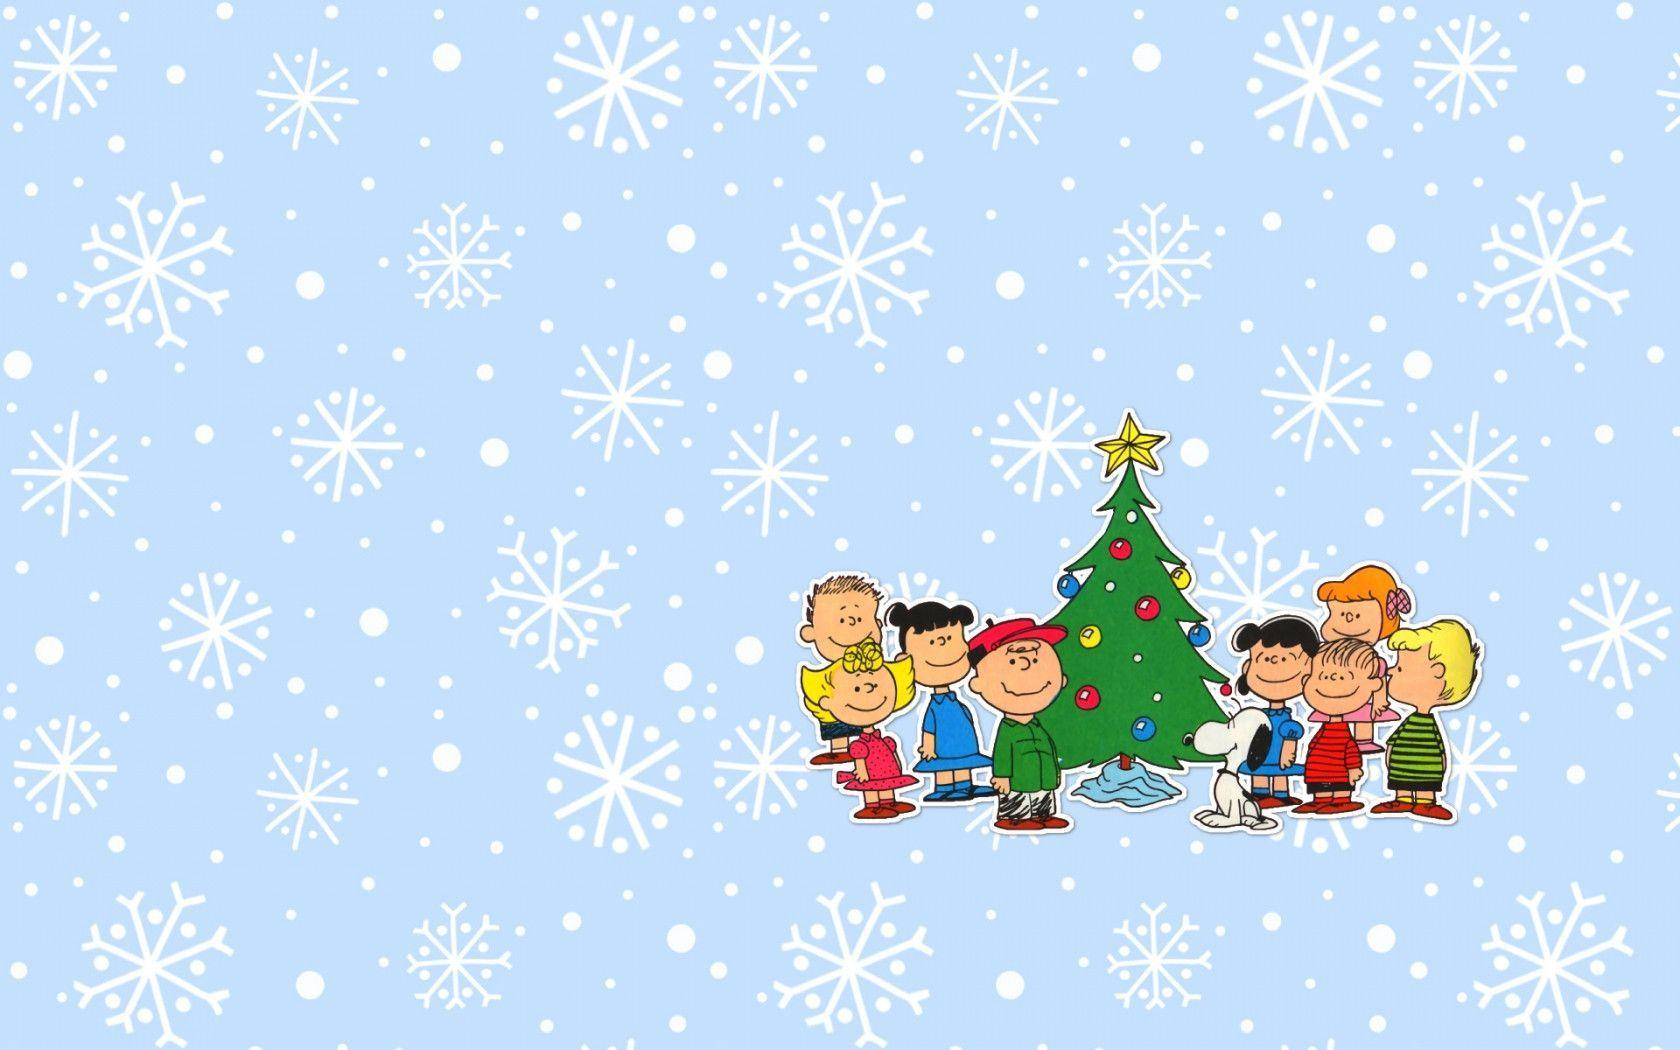 winter wallpaper charlie brown - photo #26